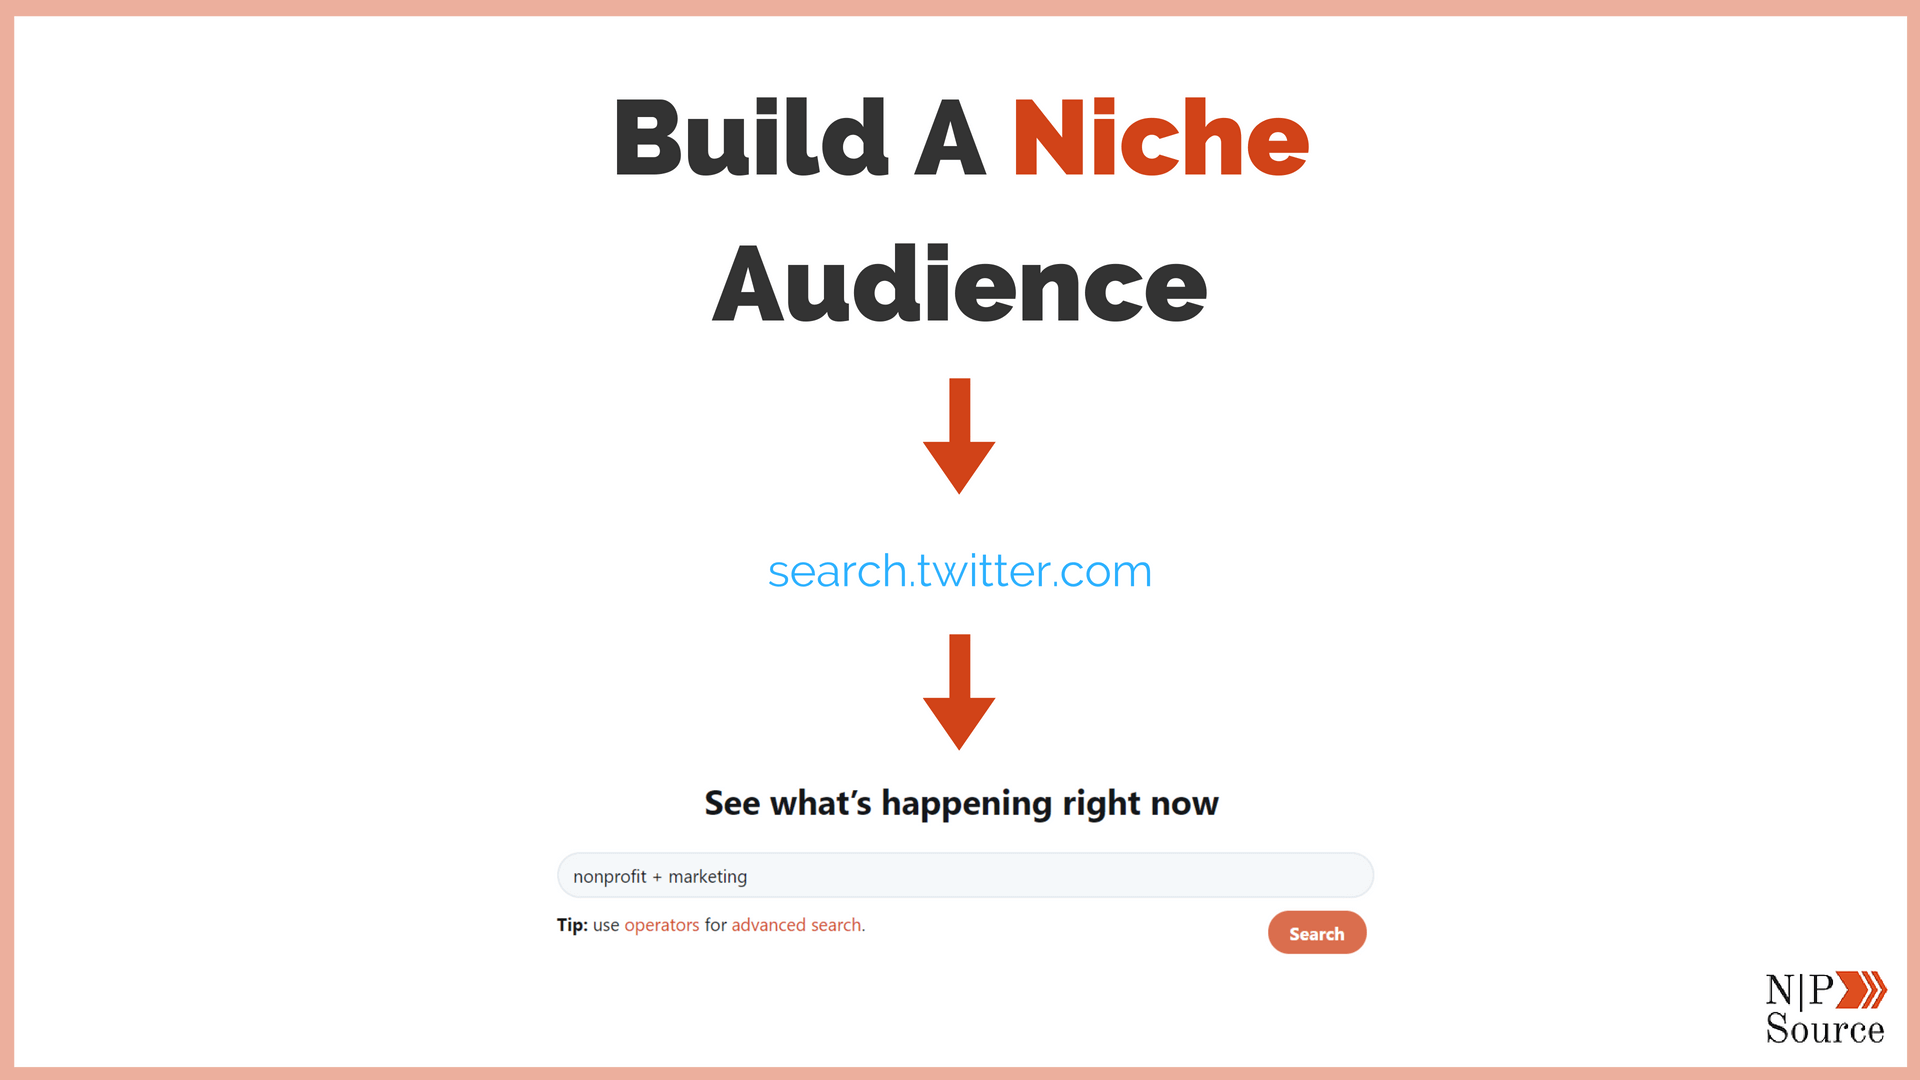 How To Build A Niche Audience - Nonprofits Source